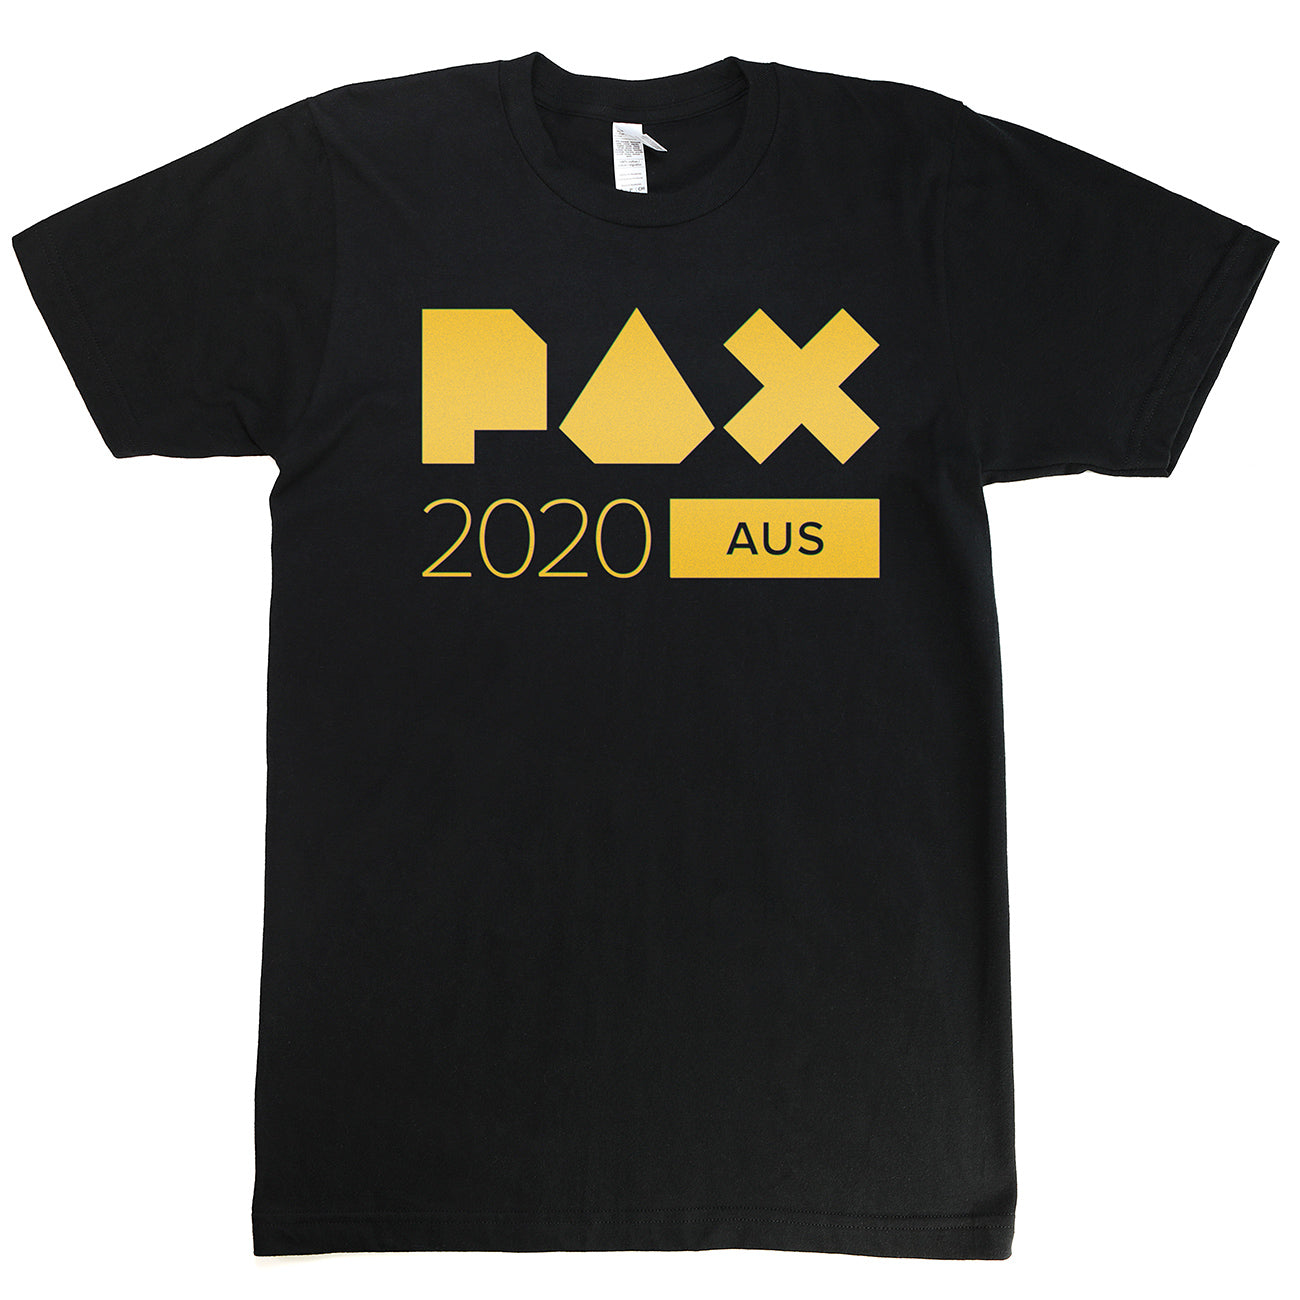 PAX Aus 2020 Black Fitted Show Tee